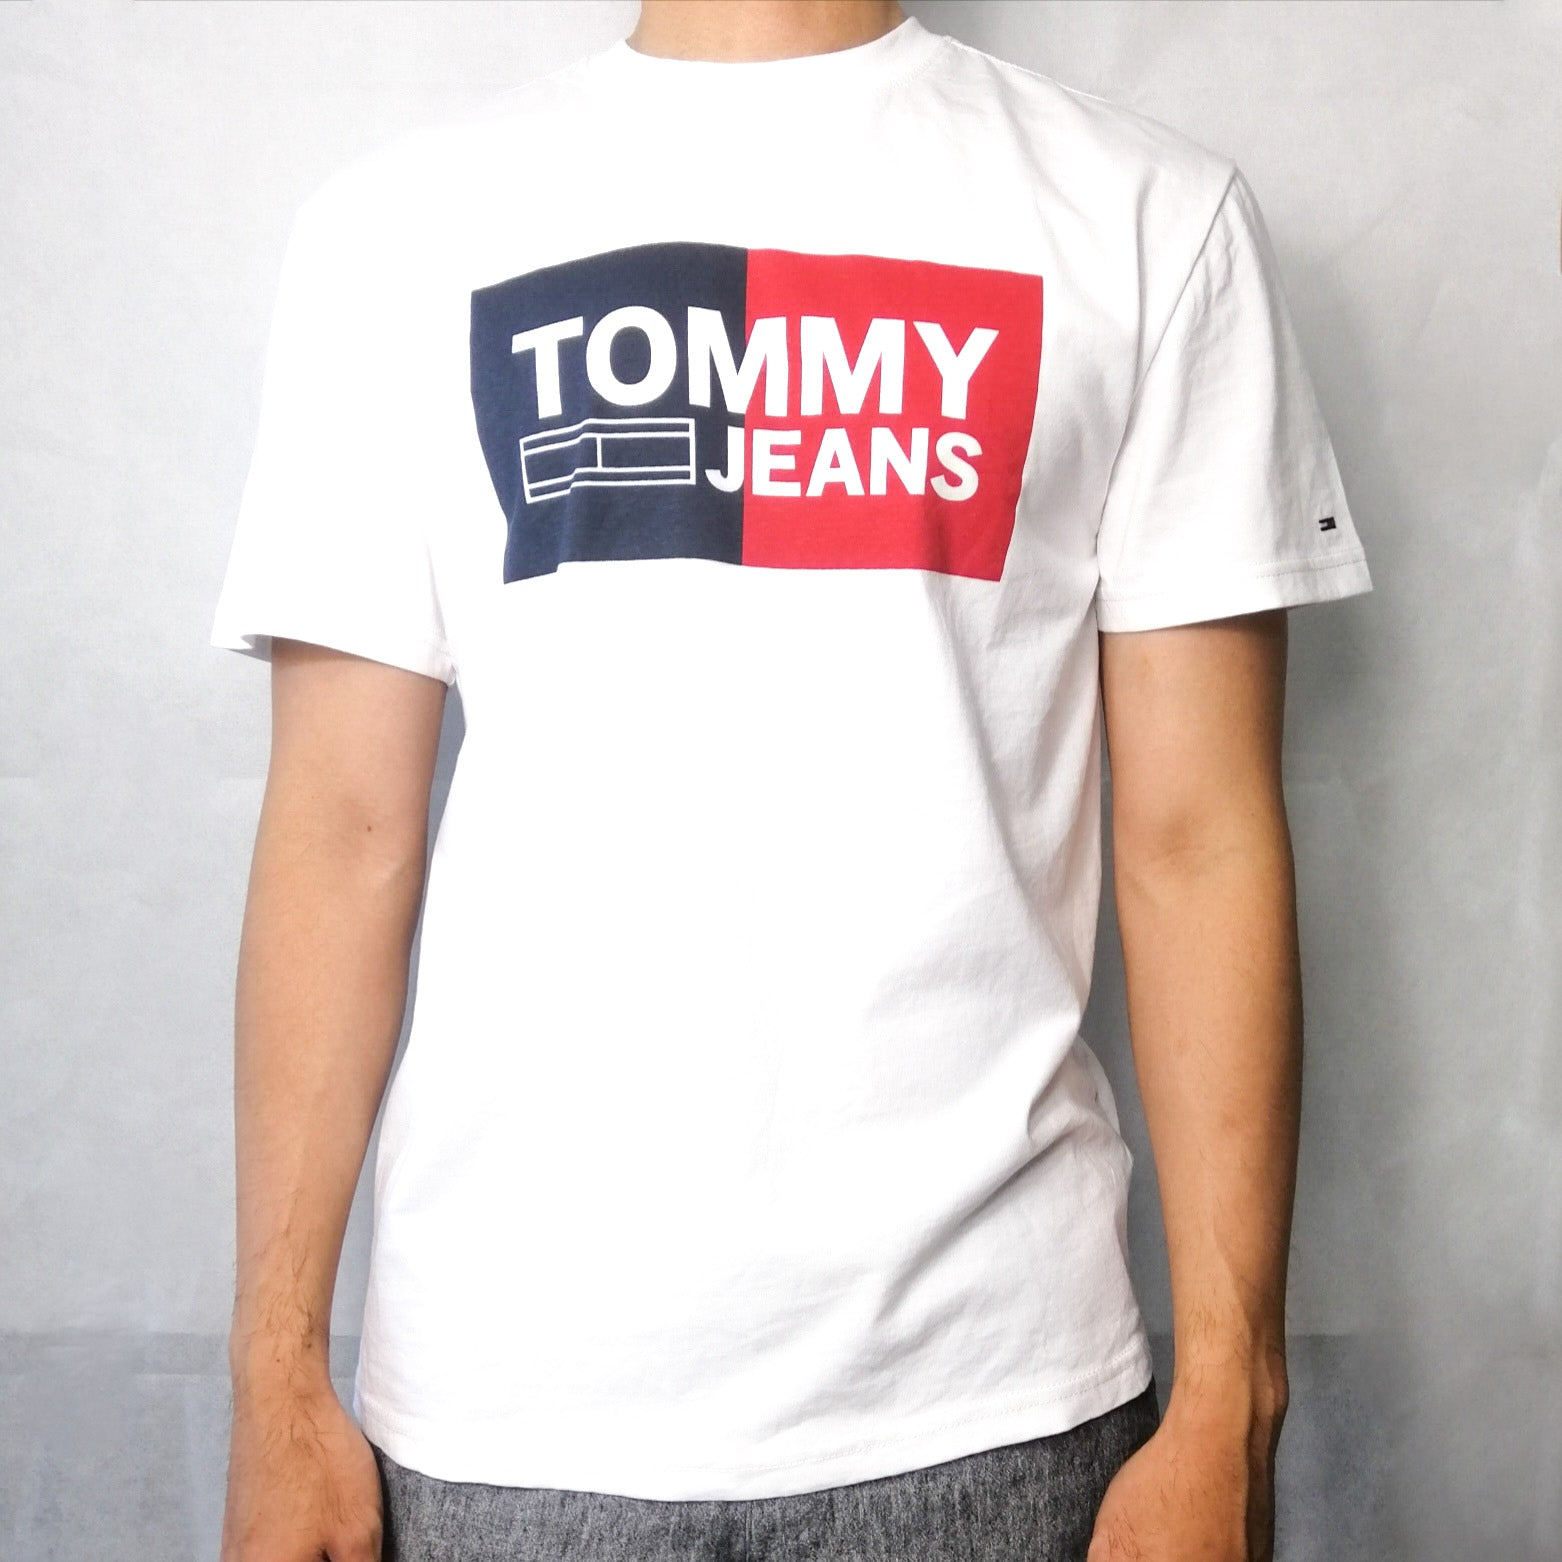 3c1926274a6 Tommy Hilfiger Jeans Circular T Shirt Navy - Style Up